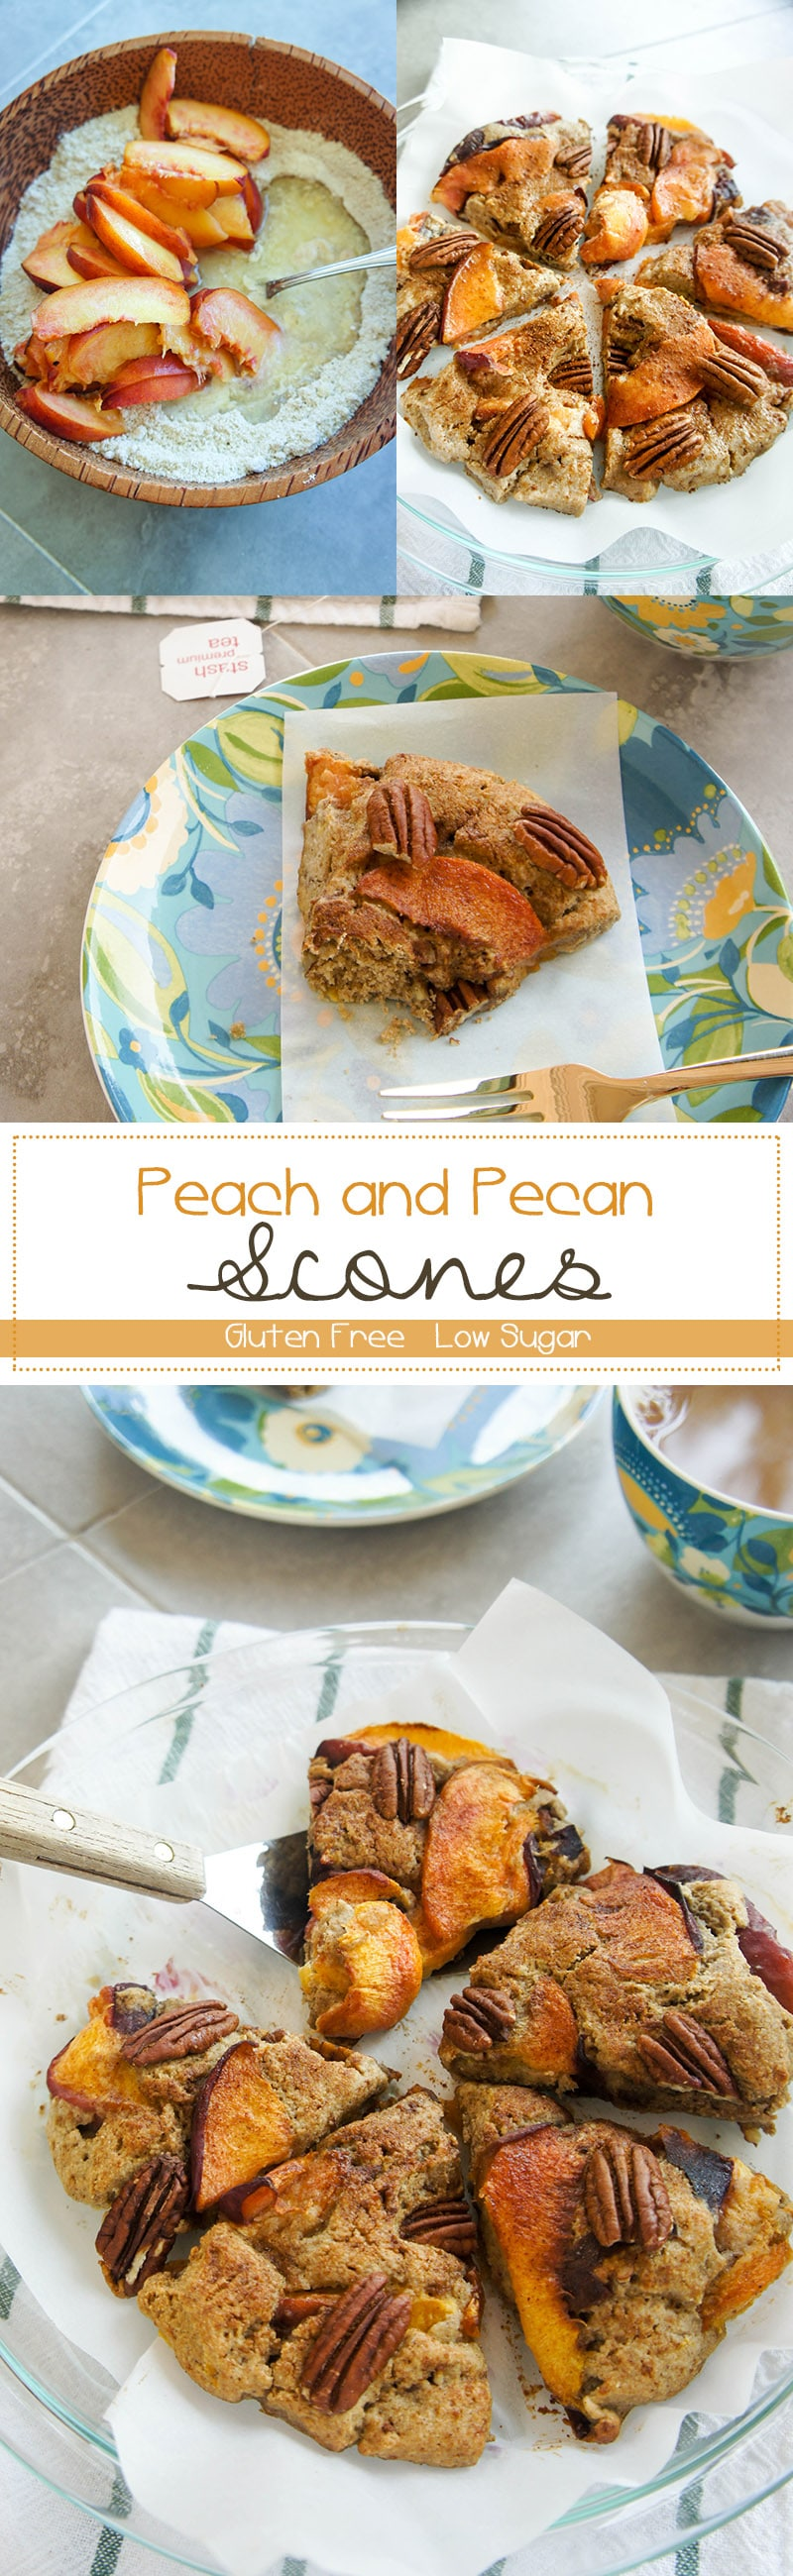 Image Result For Chocolate Chip Pecan Scones Recipe